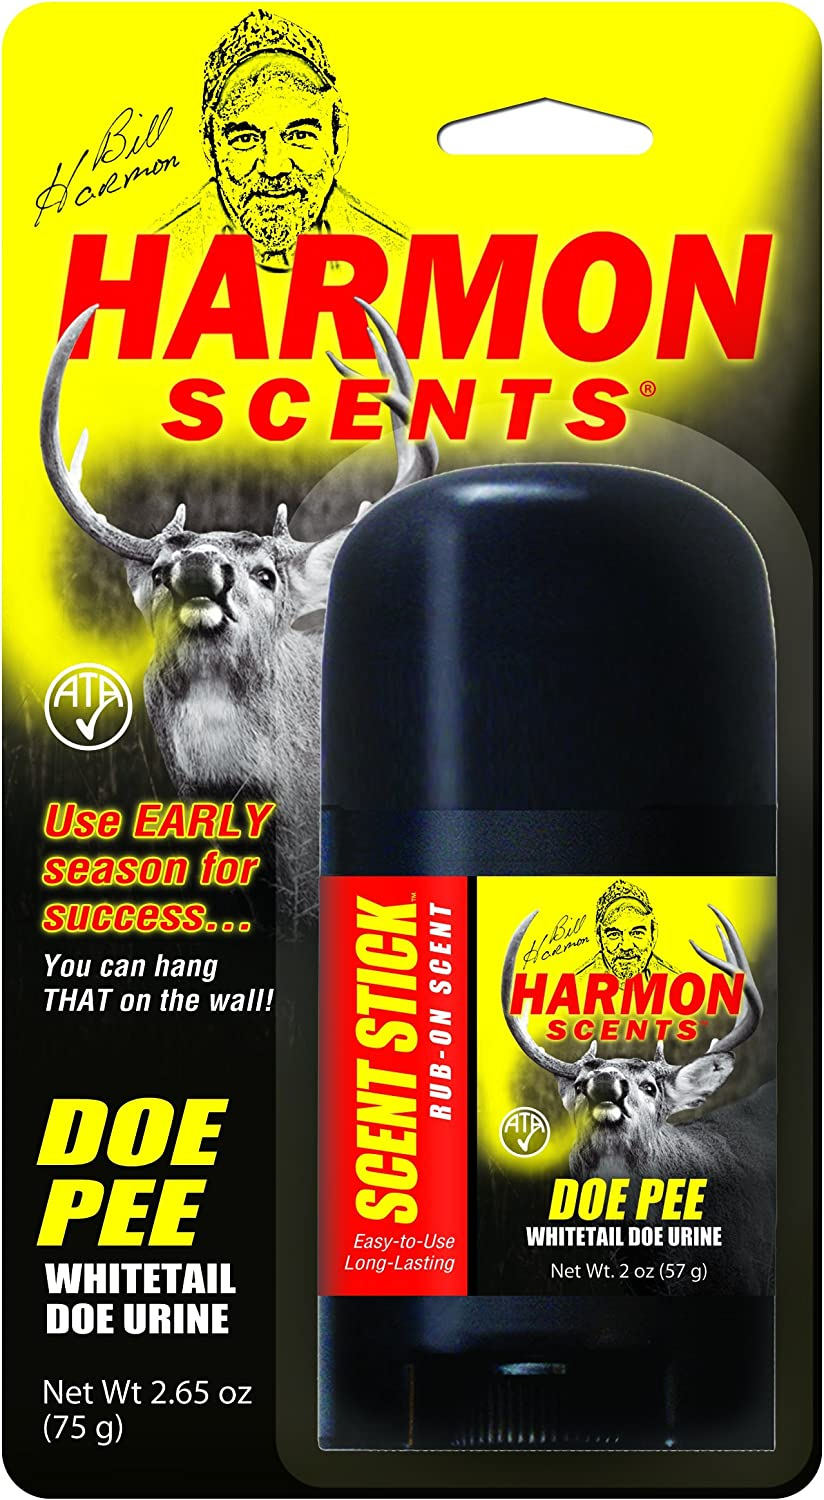 Harmon Scents - Doe Pee - Rub On Scent Stick - HDPSS - Whitetail Urines - Deer Hunting Attractant